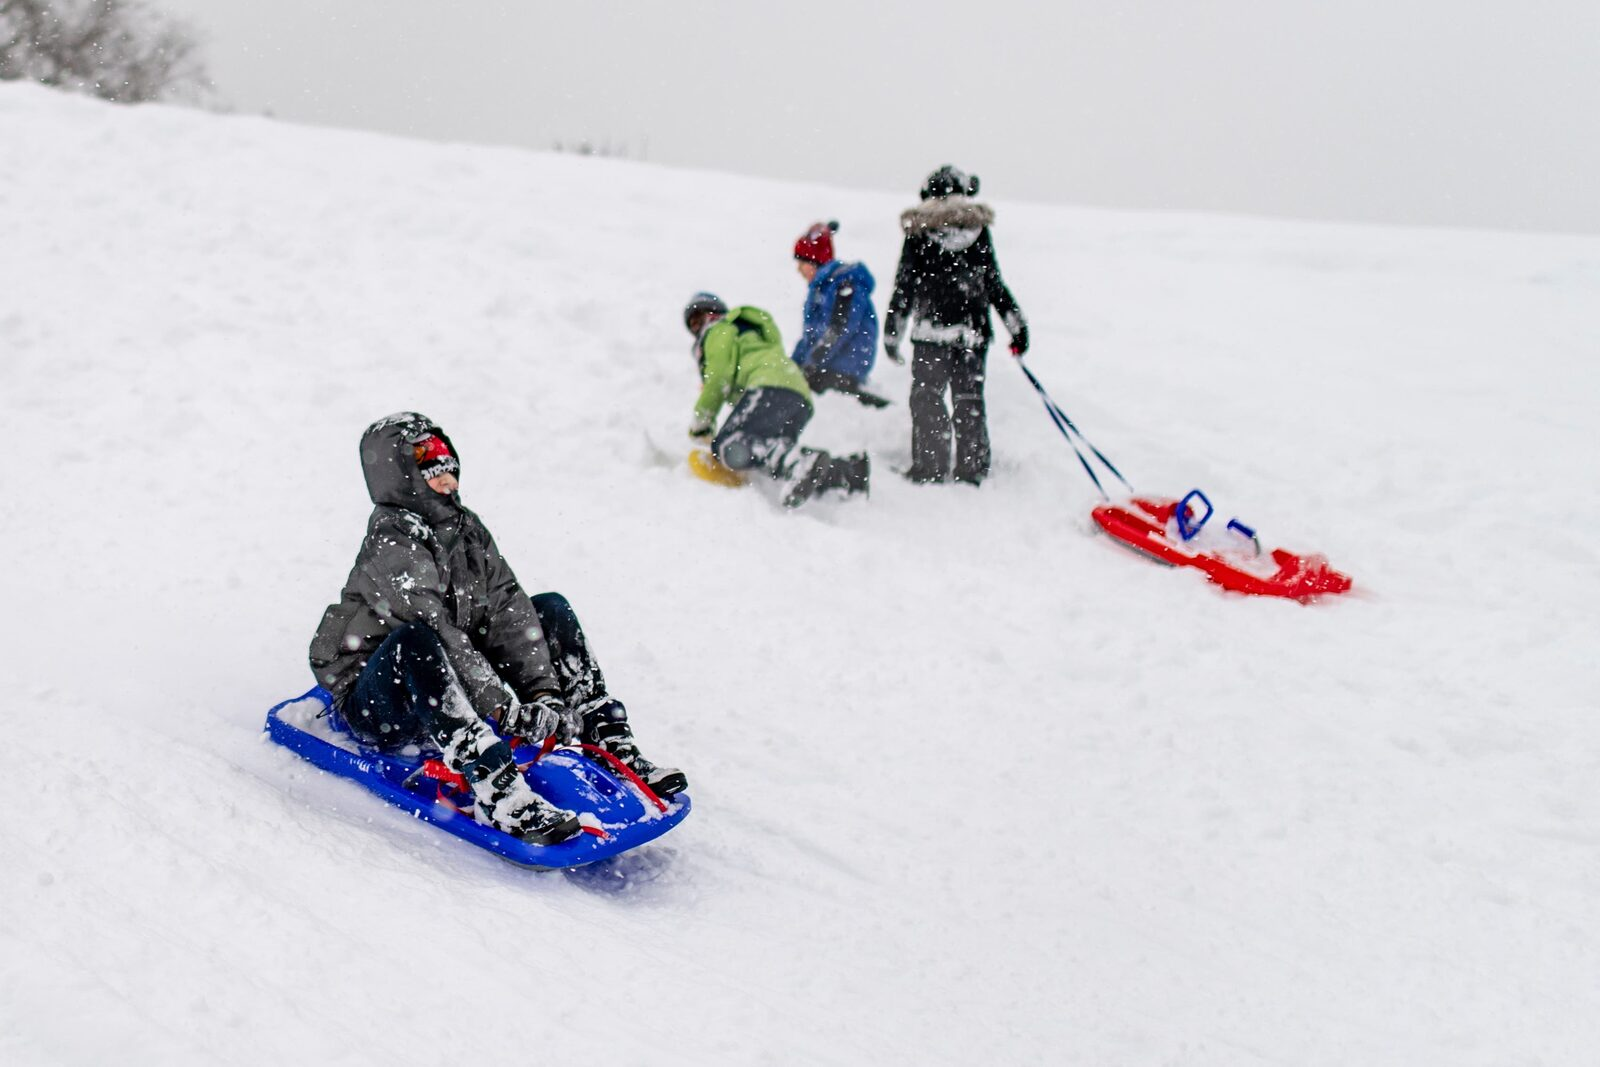 Flumserberg is one of the most kids friendly ski resorts